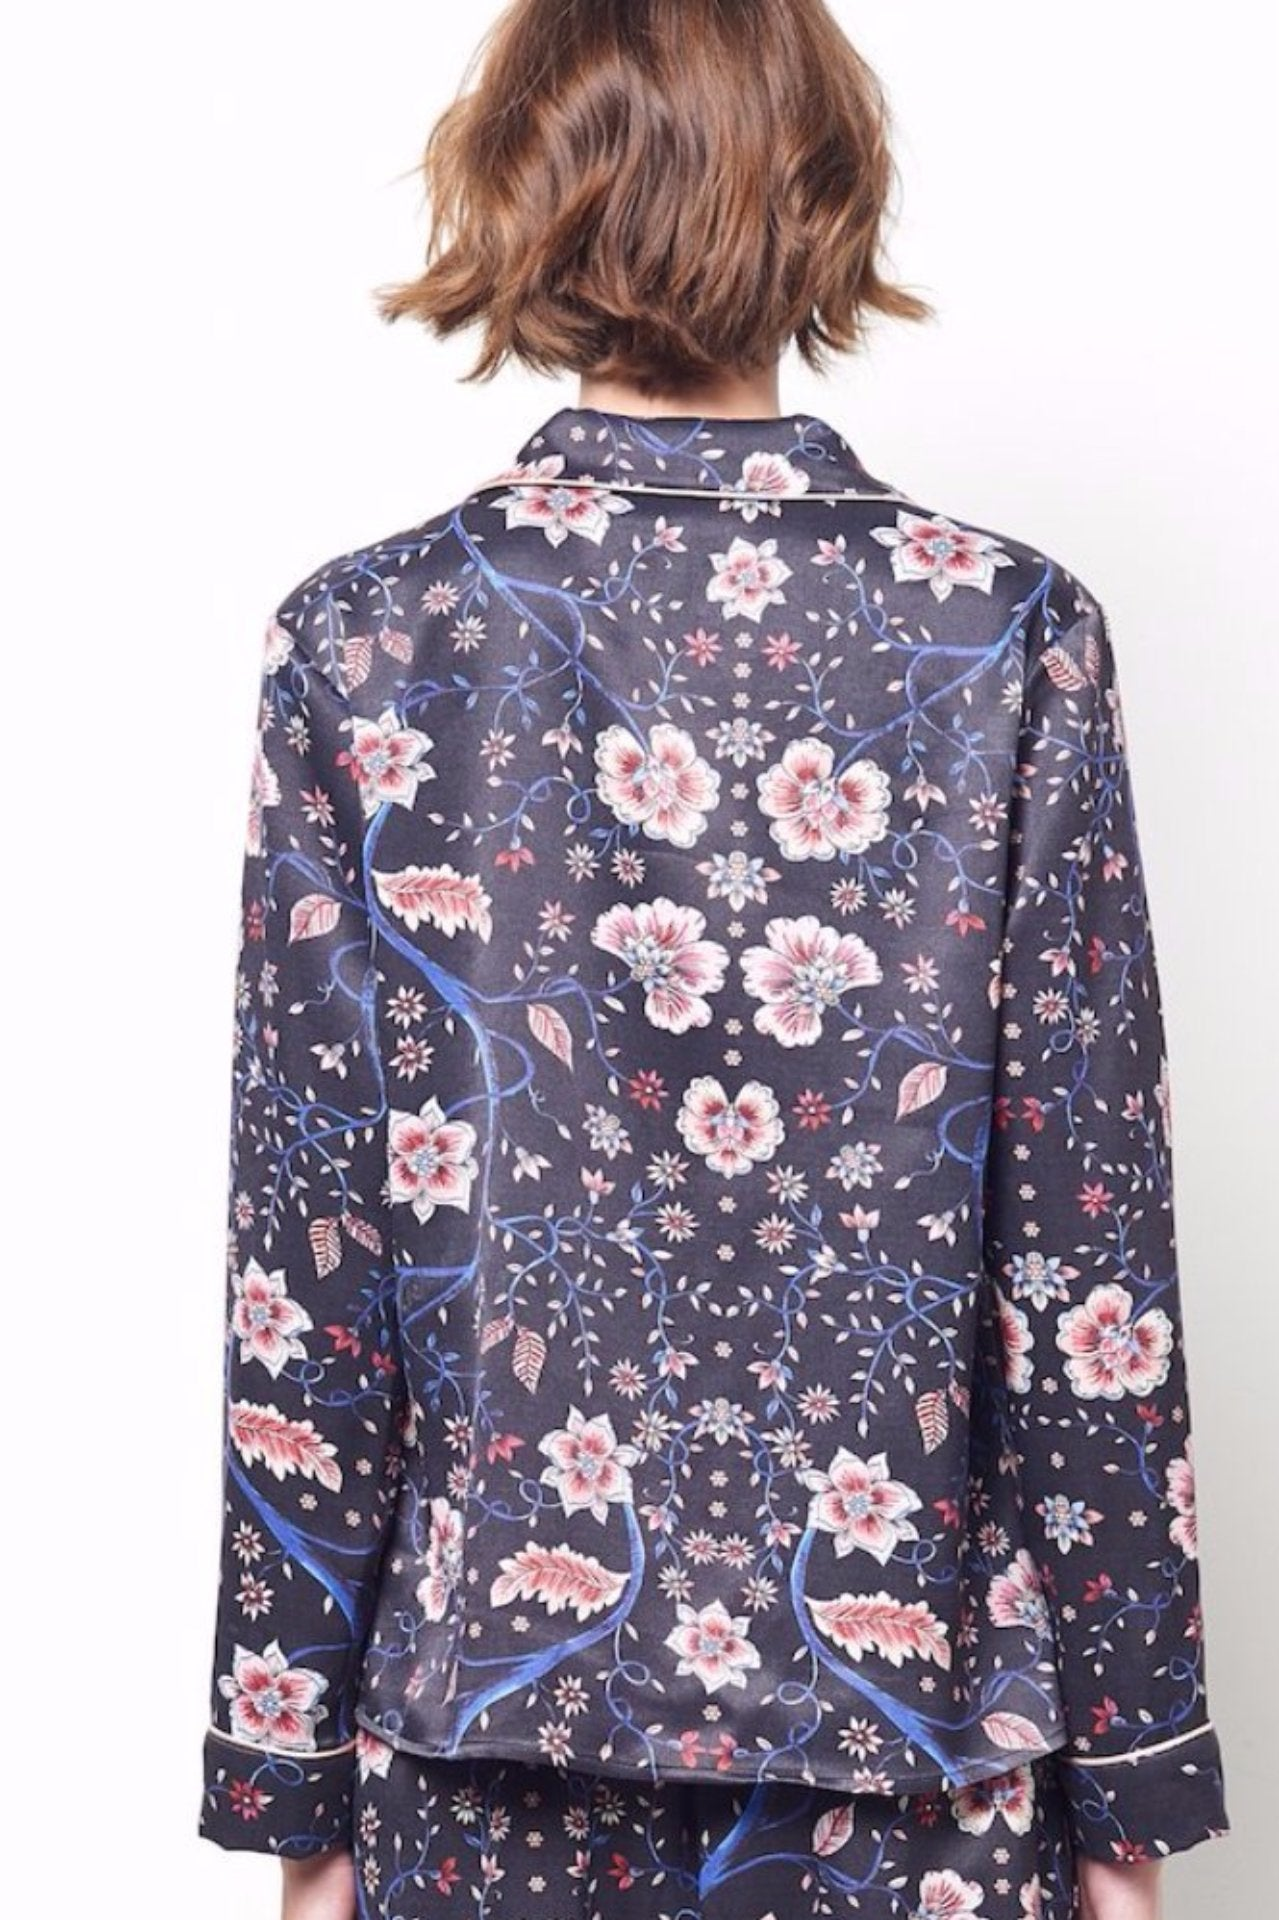 SIENNA Cocktail Top in Vine Floral Print